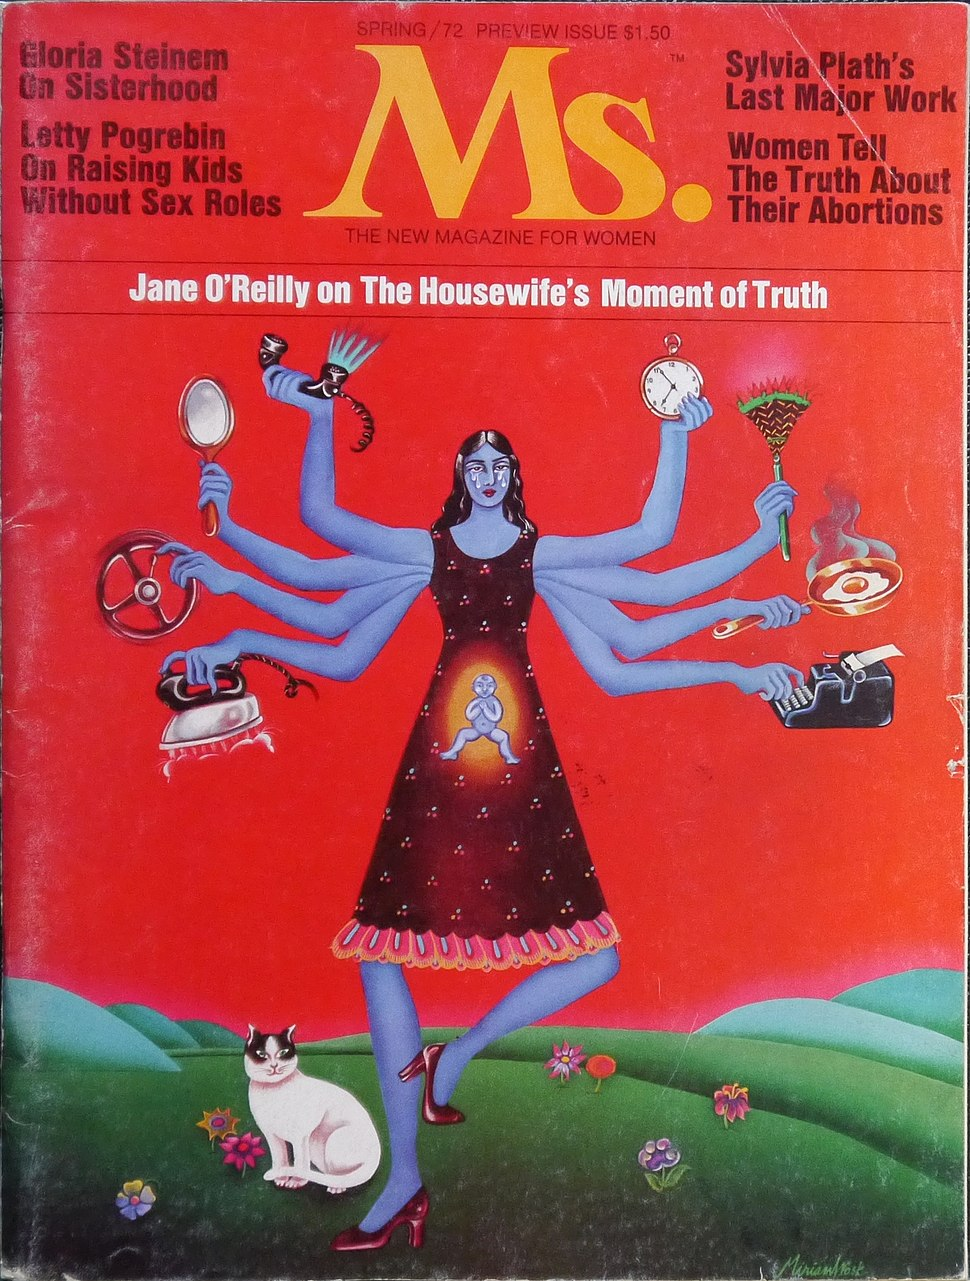 Ms. magazine Cover - Spring 1972